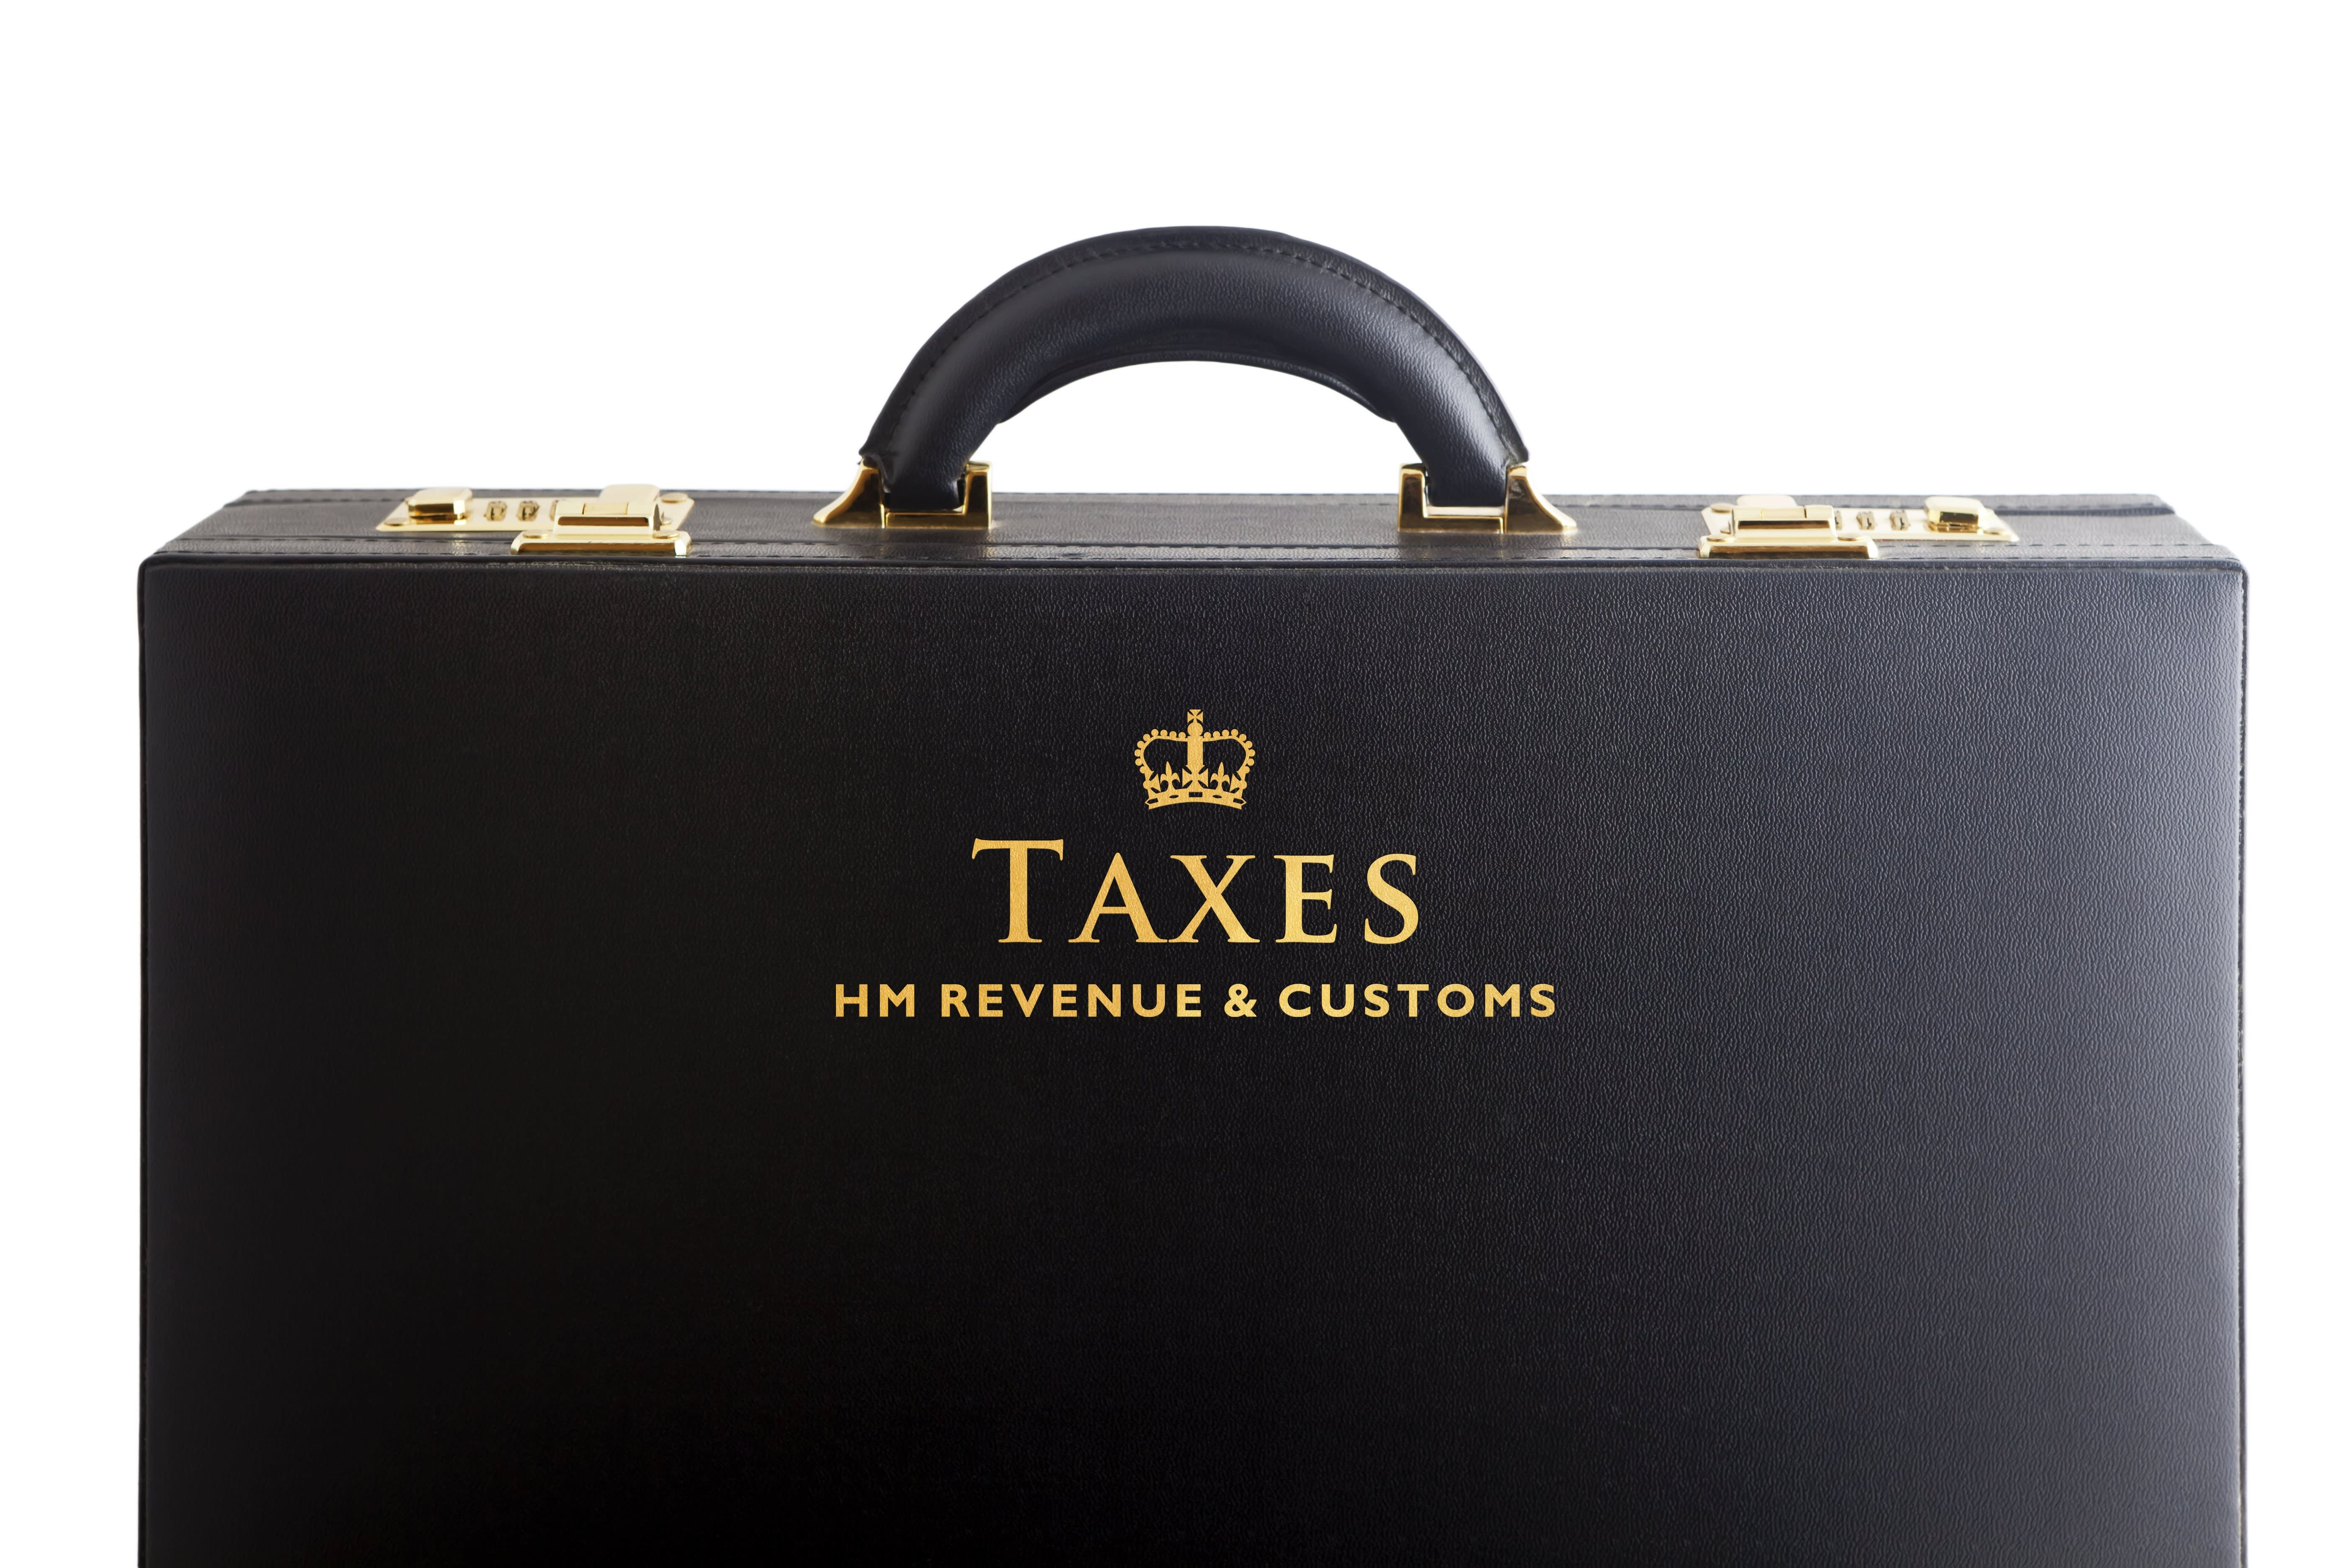 HMRC launches IHT tool